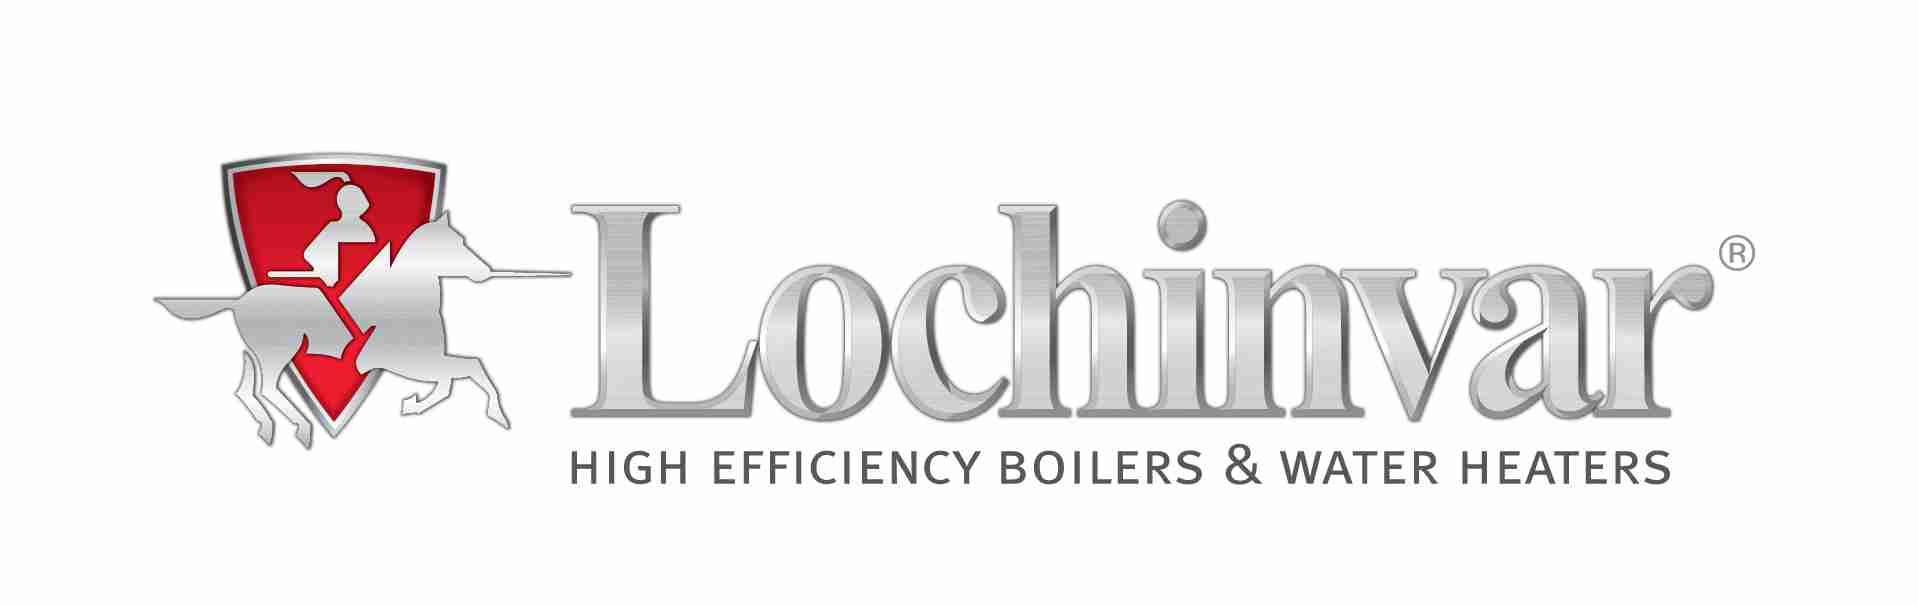 lochinvar-high-efficiency-boilers-water-heaters